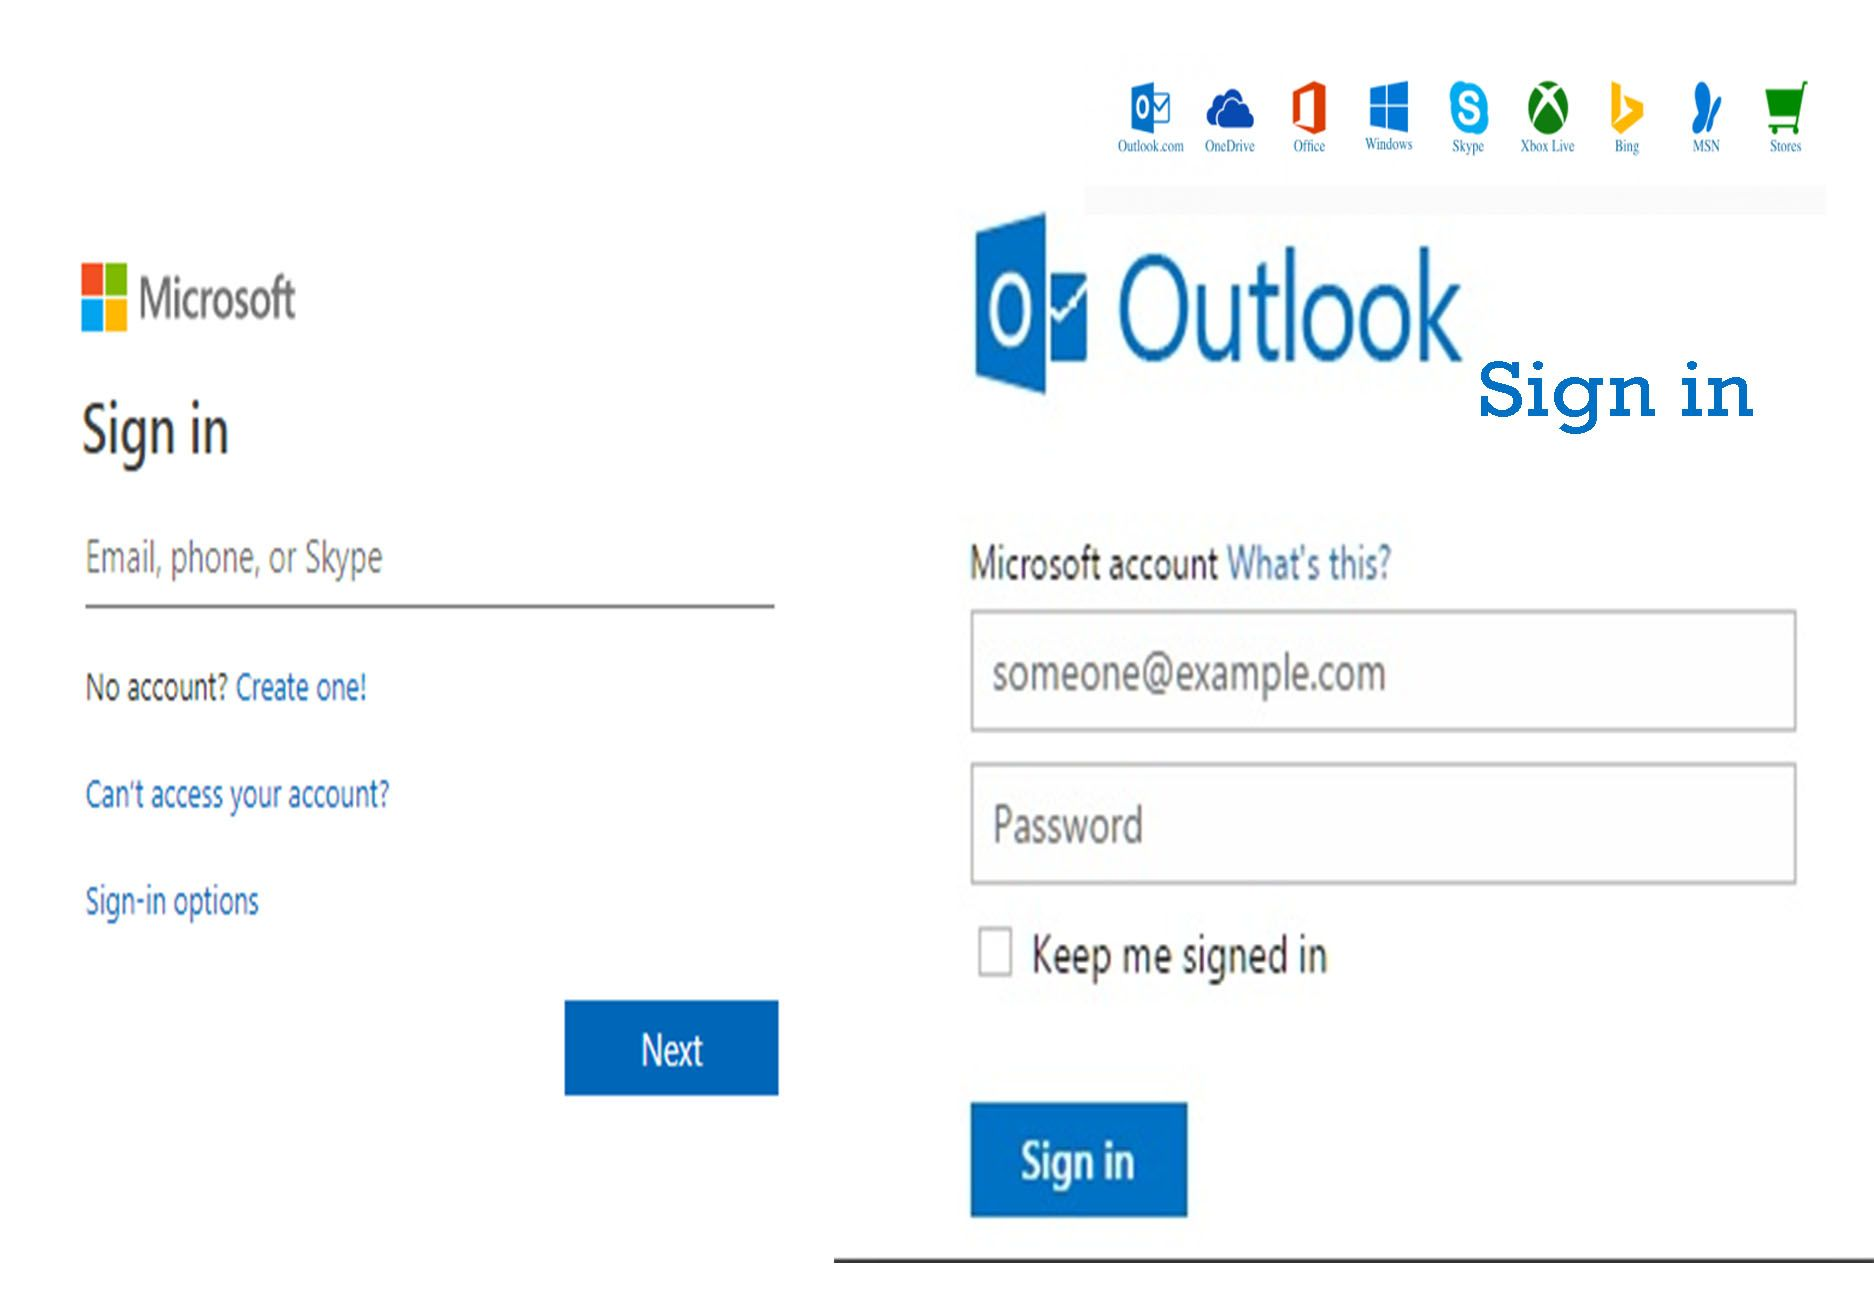 Sign into Microsoft Outlook